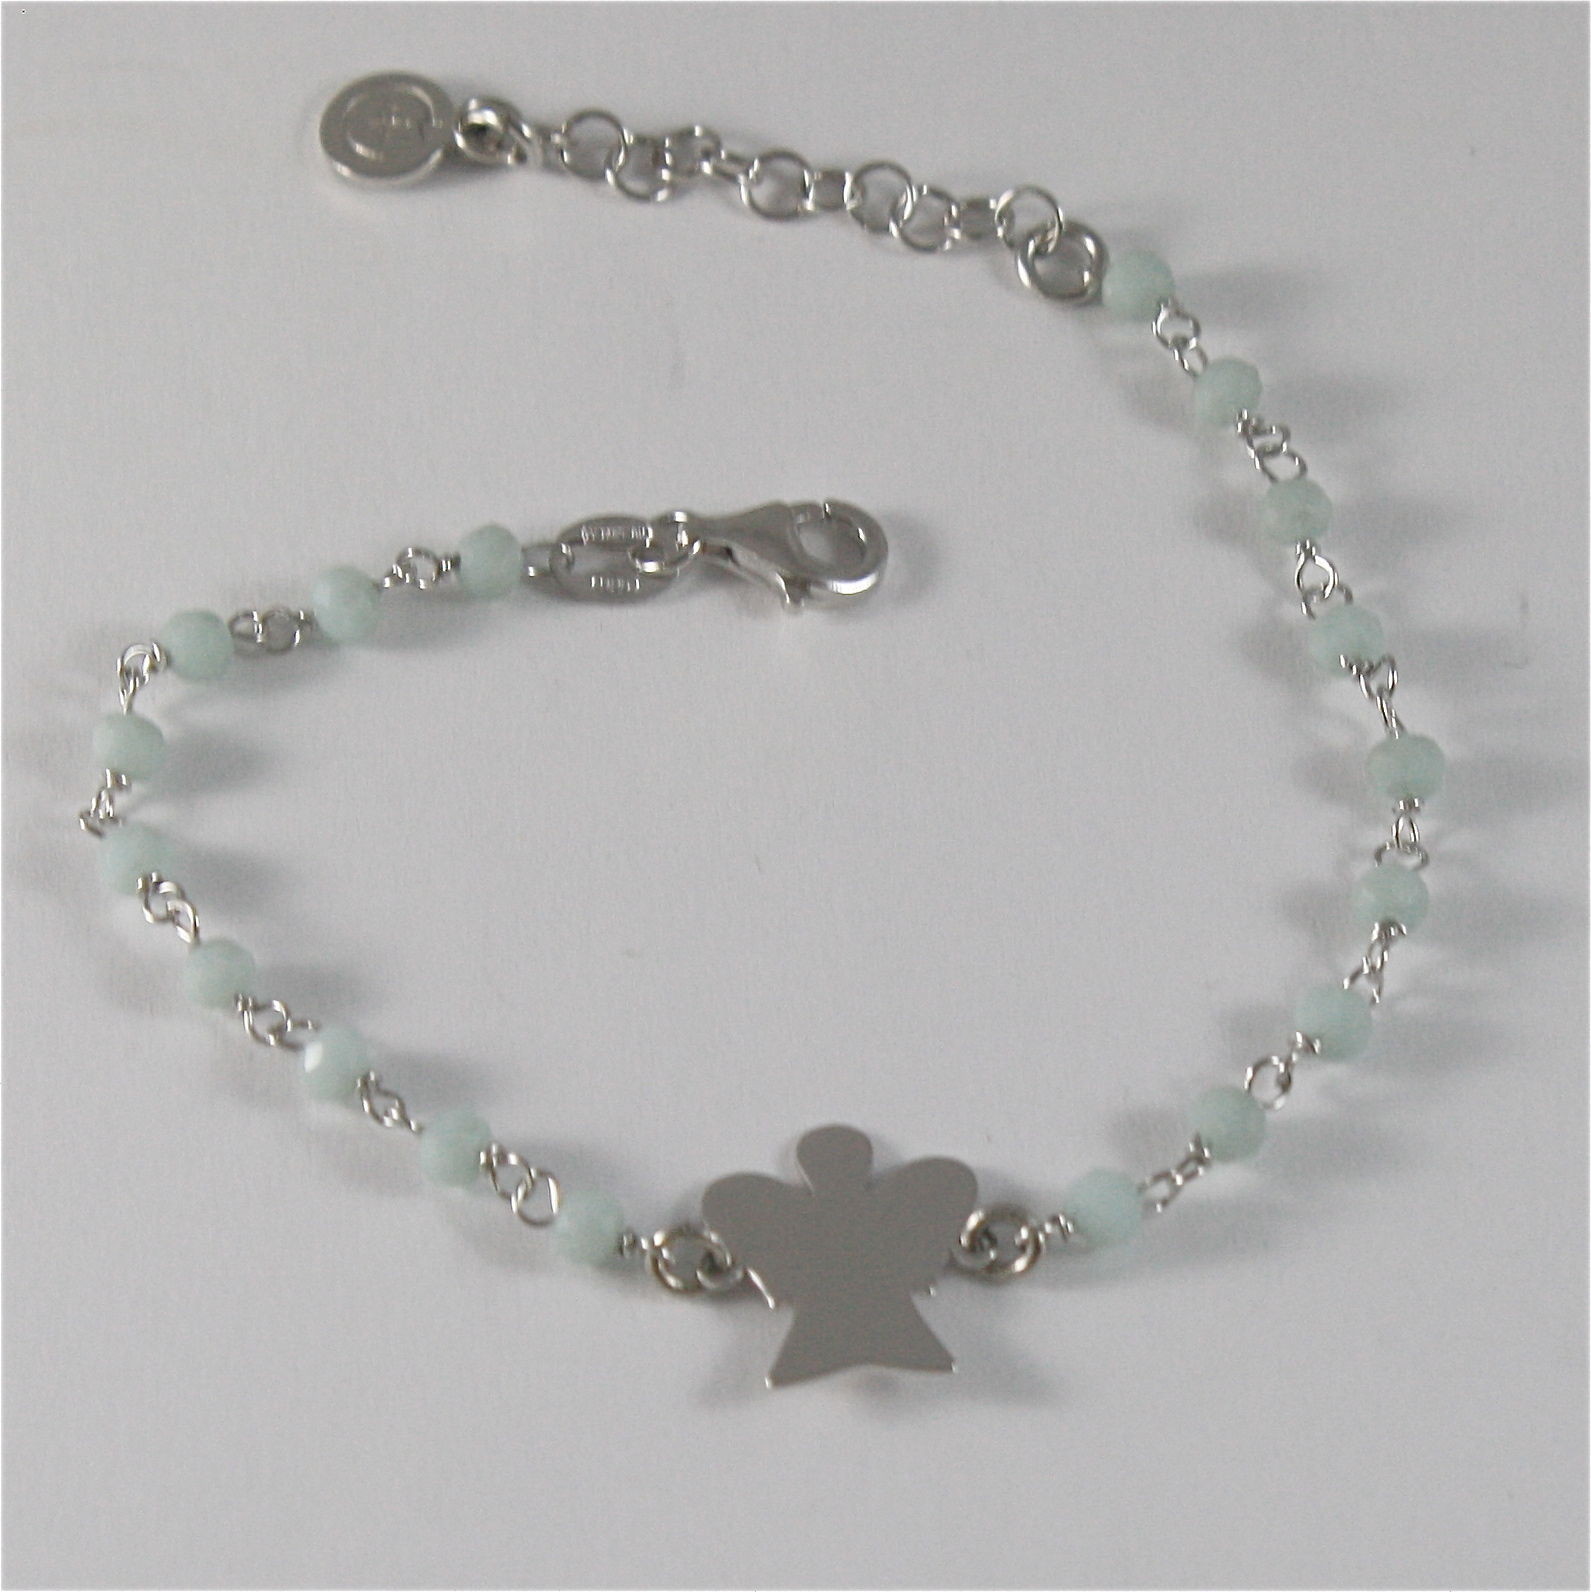 925 RHODIUM SILVER BRACELET WITH ANGEL AND GREY CRYSTALS  MADE IN ITALY 7.09 IN